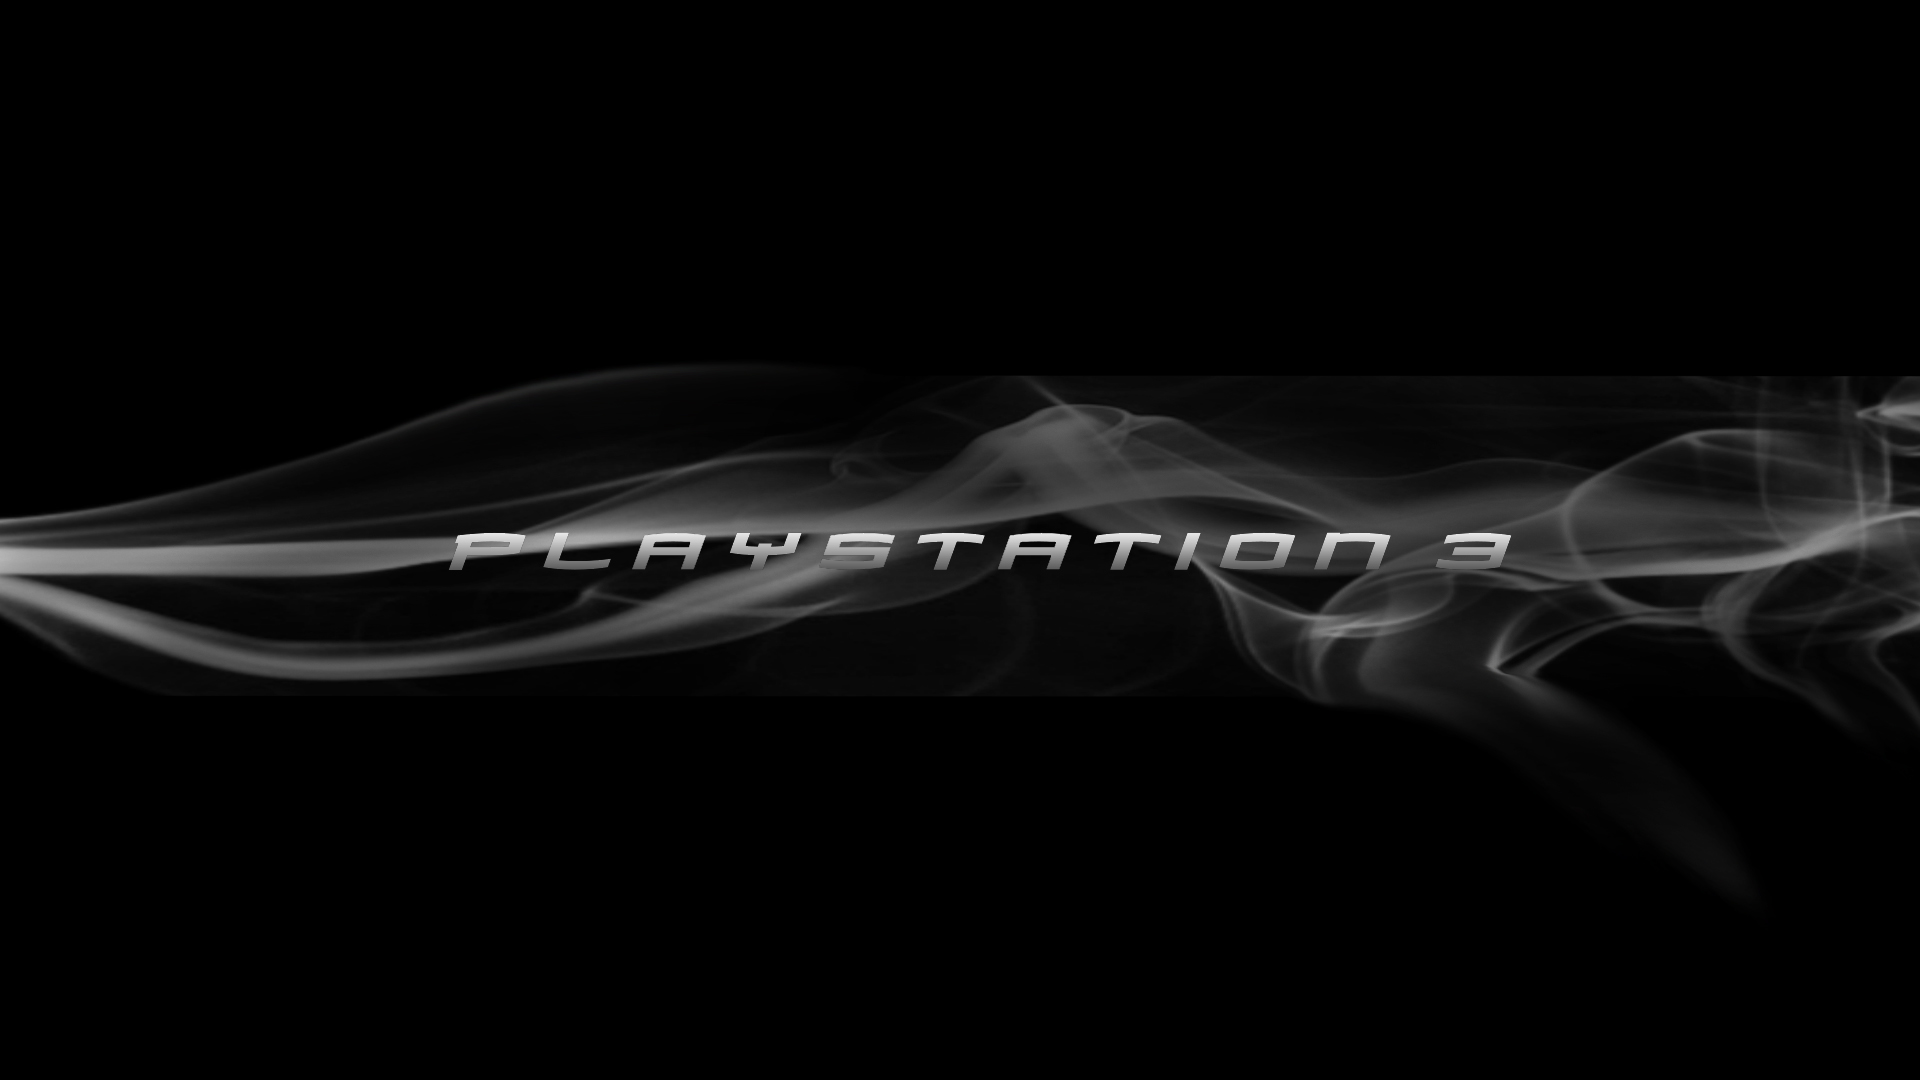 playstation 3 smoke logo